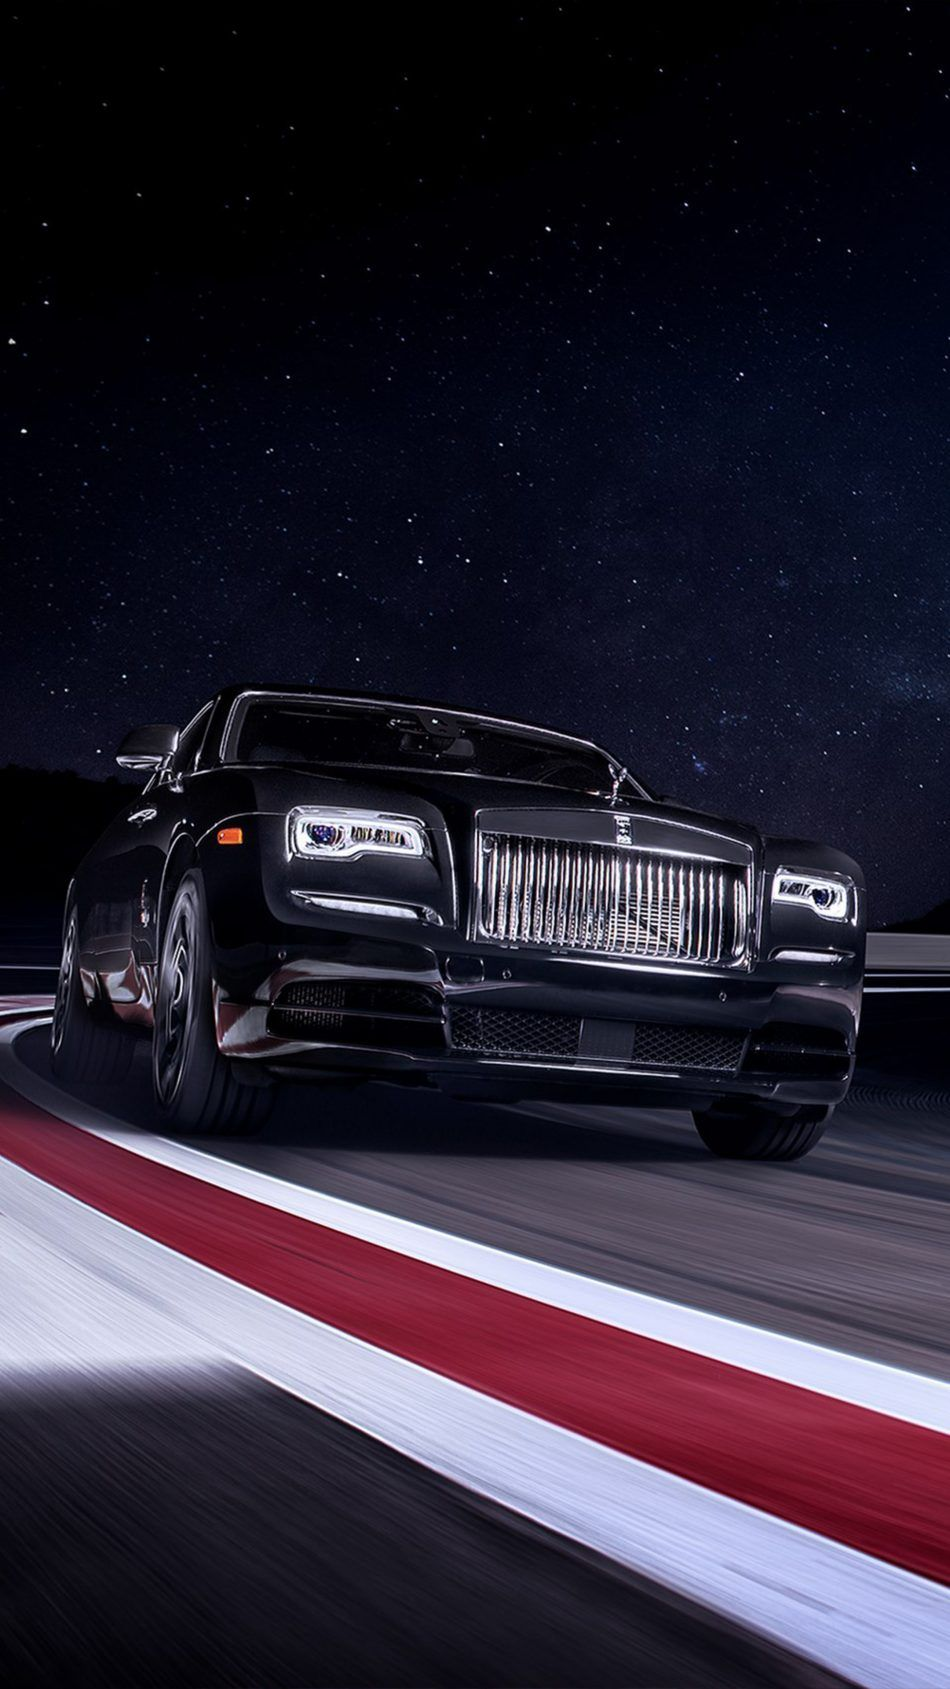 Rolls Royce Black Badge Wraith On Race Track Car Wallpapers